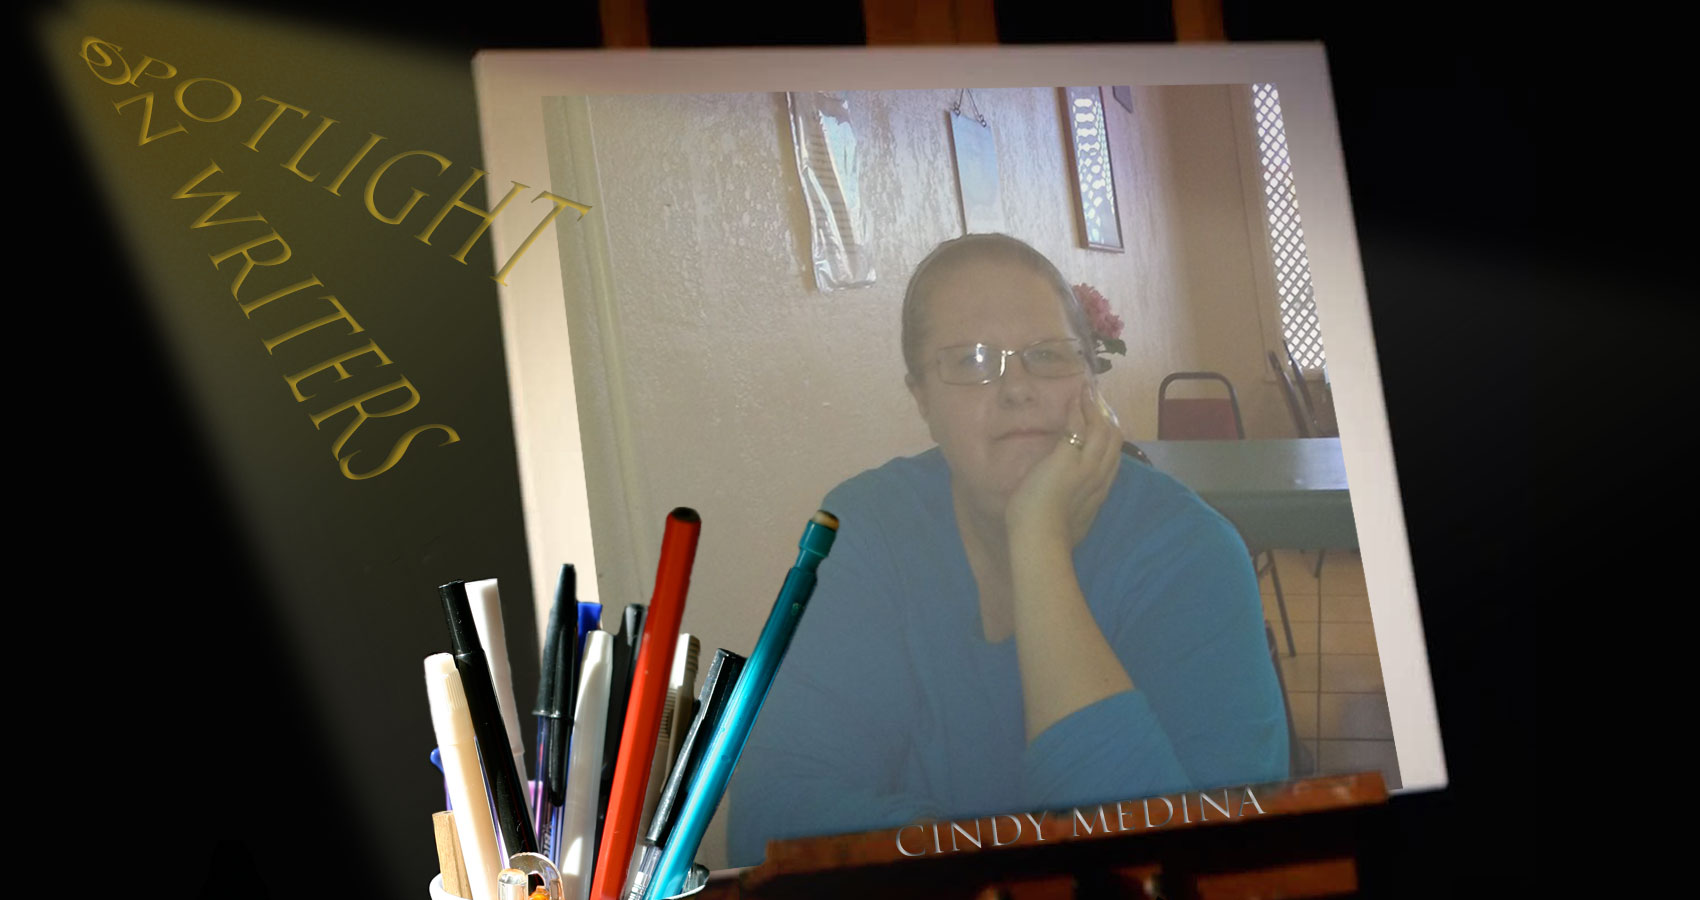 Spotlight On Writers - Cindy Medina, an interview at Spillwords.com